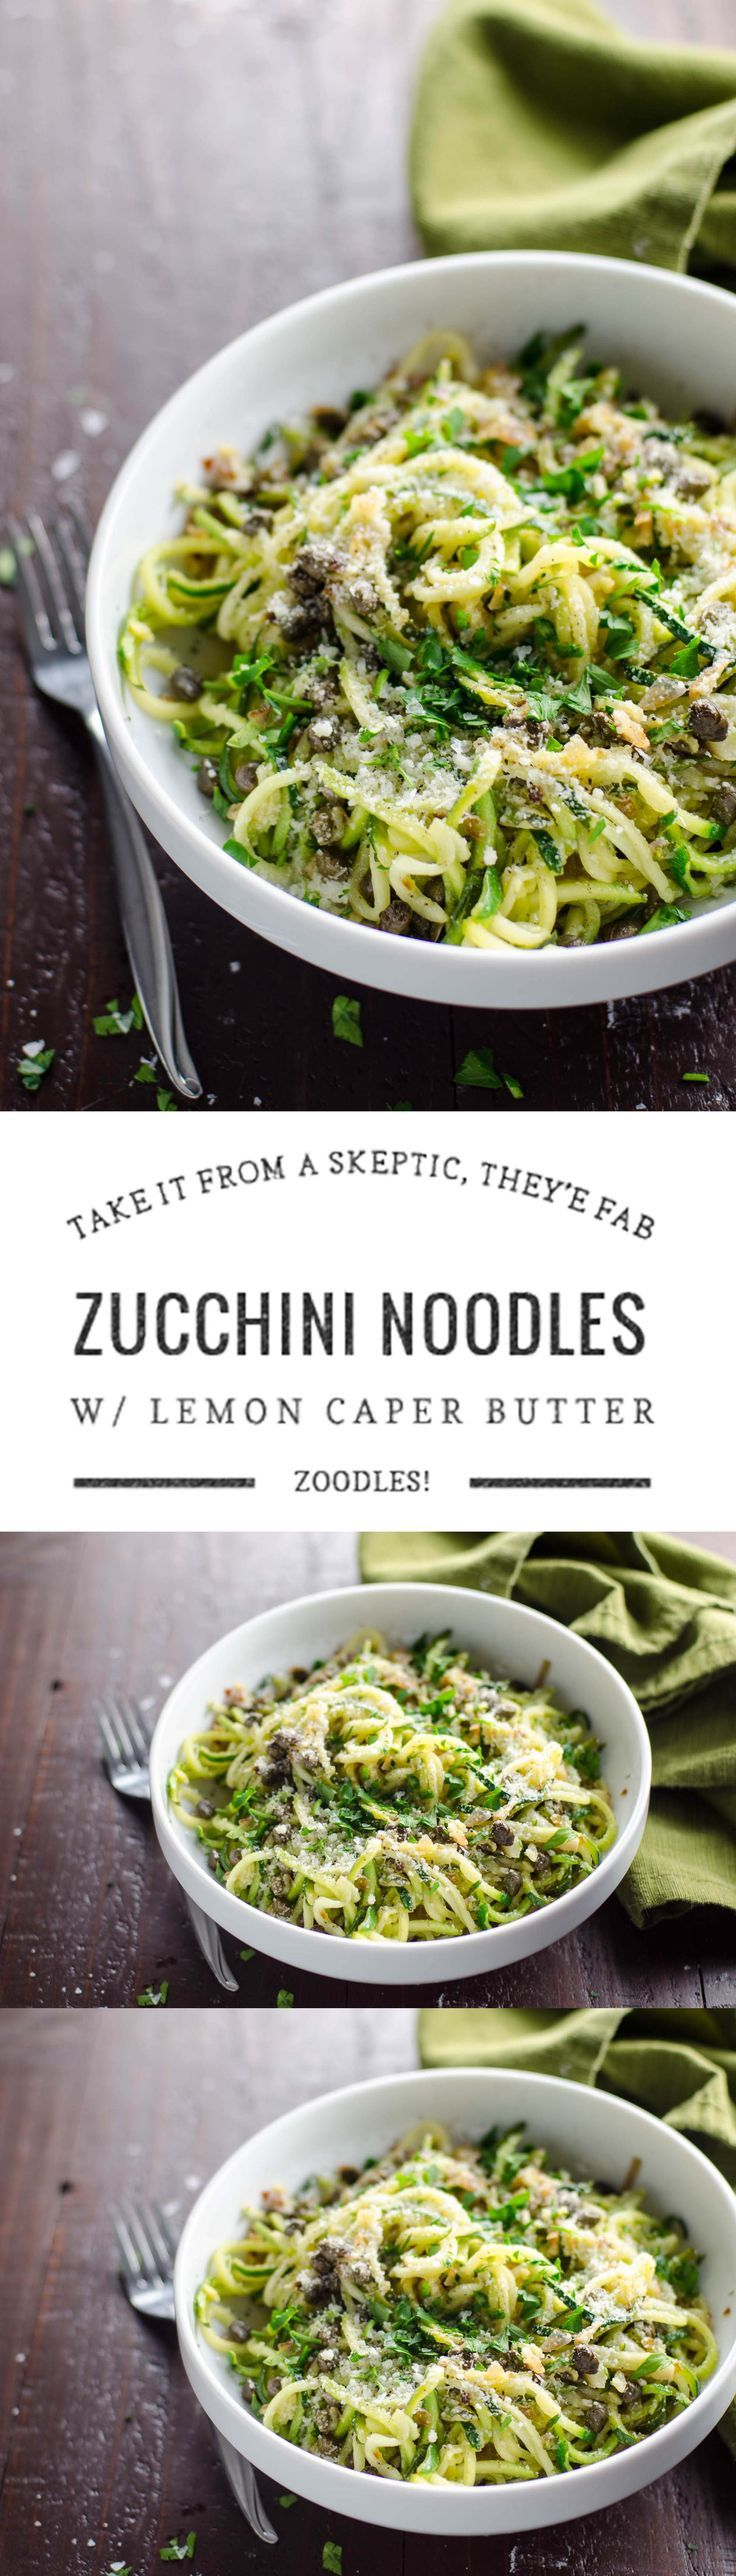 Take it from a true skeptic who loves spaghetti: done right, zucchini noodles (zoodles) are delicious. Learn how to make them the best they can be.